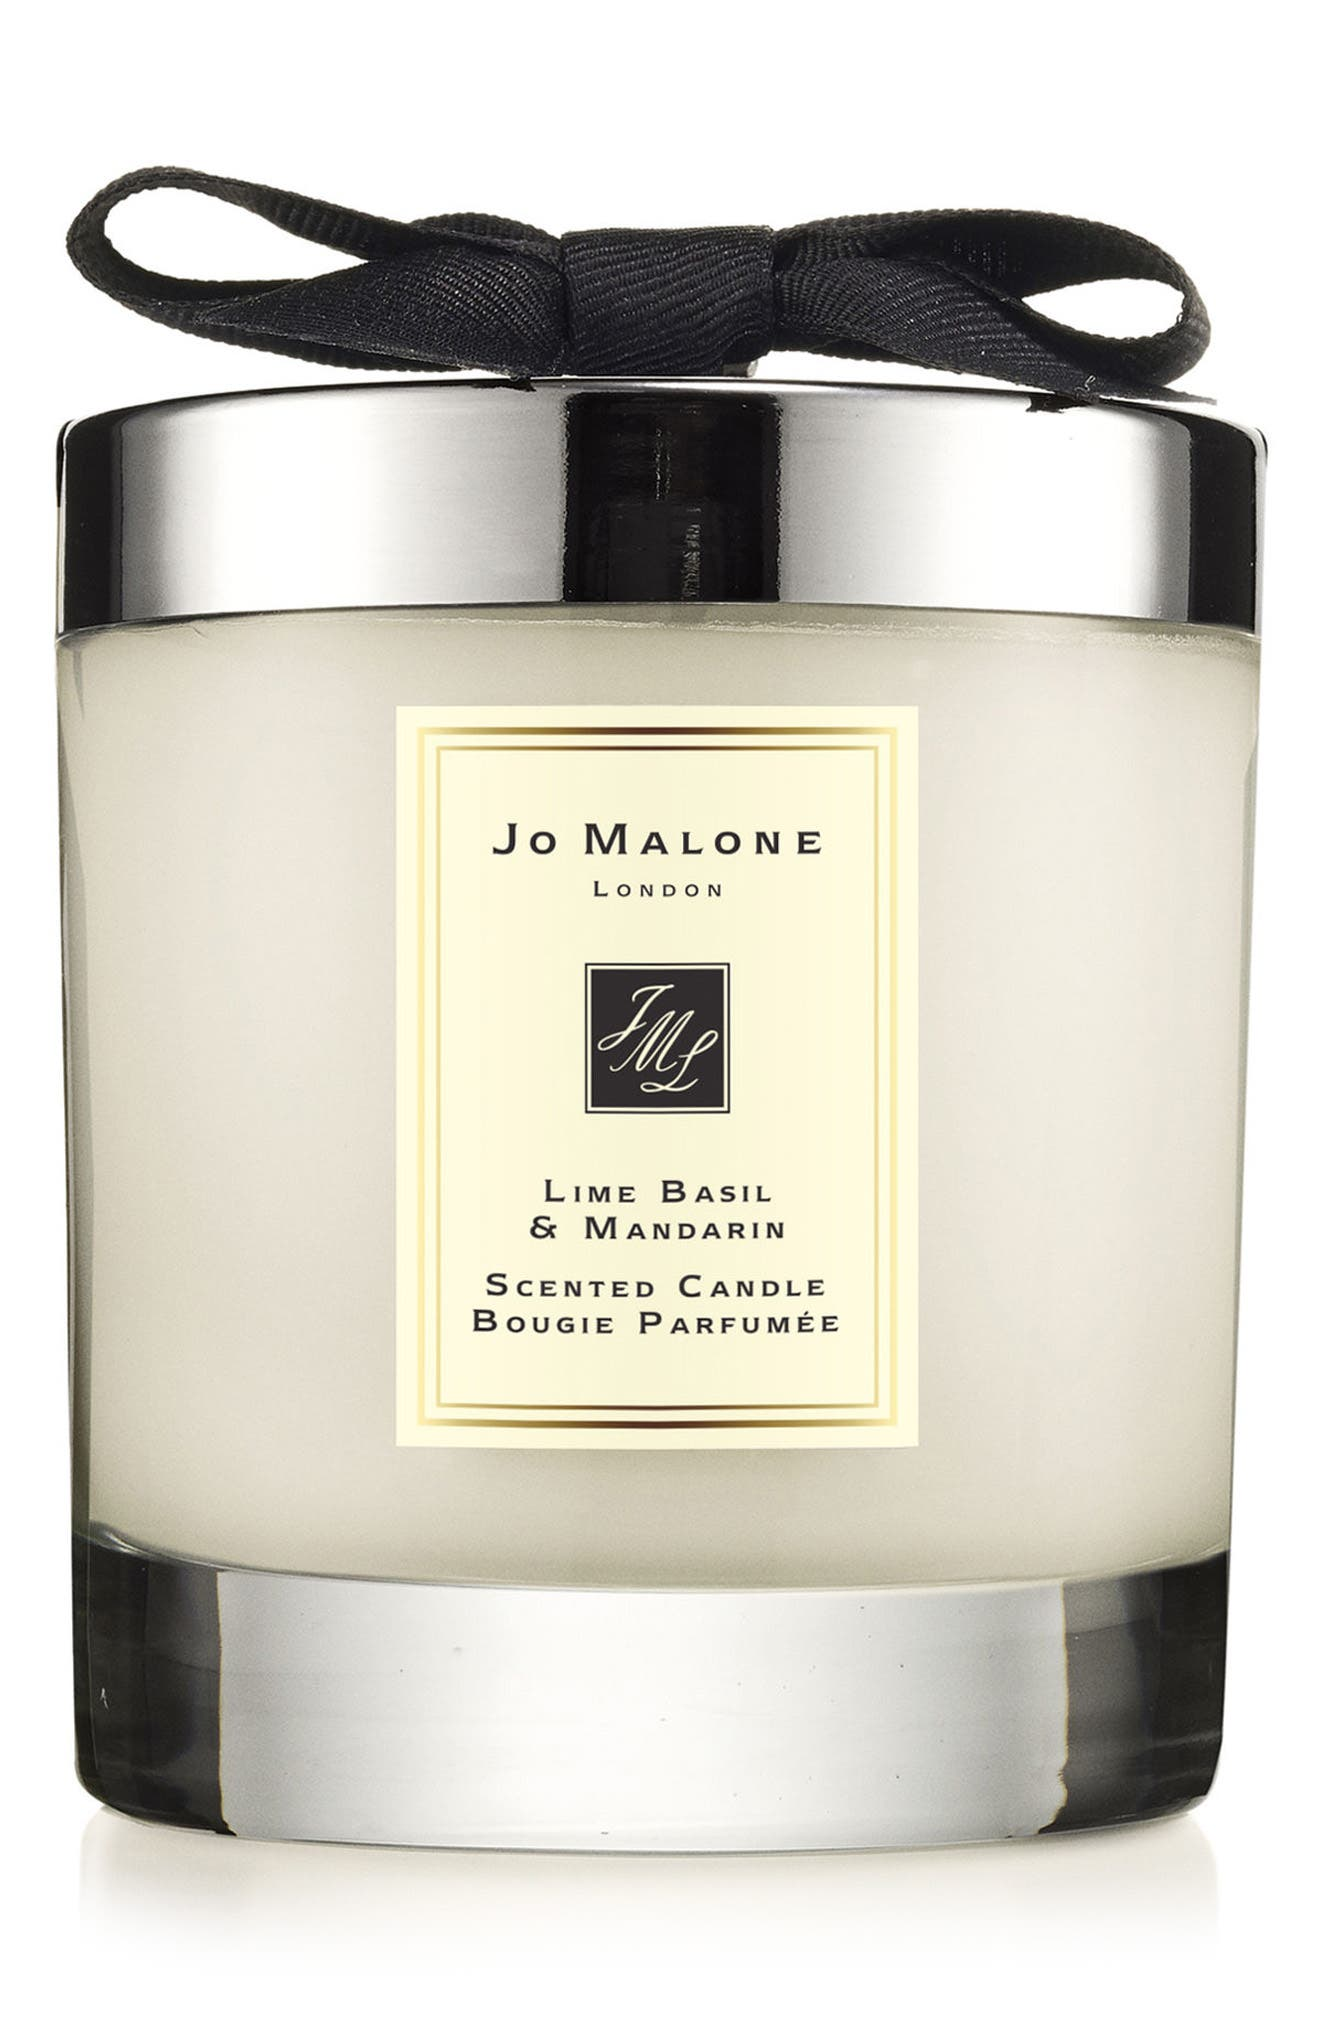 Jo Malone™ 'Lime Basil & Mandarin' Scented Home Candle